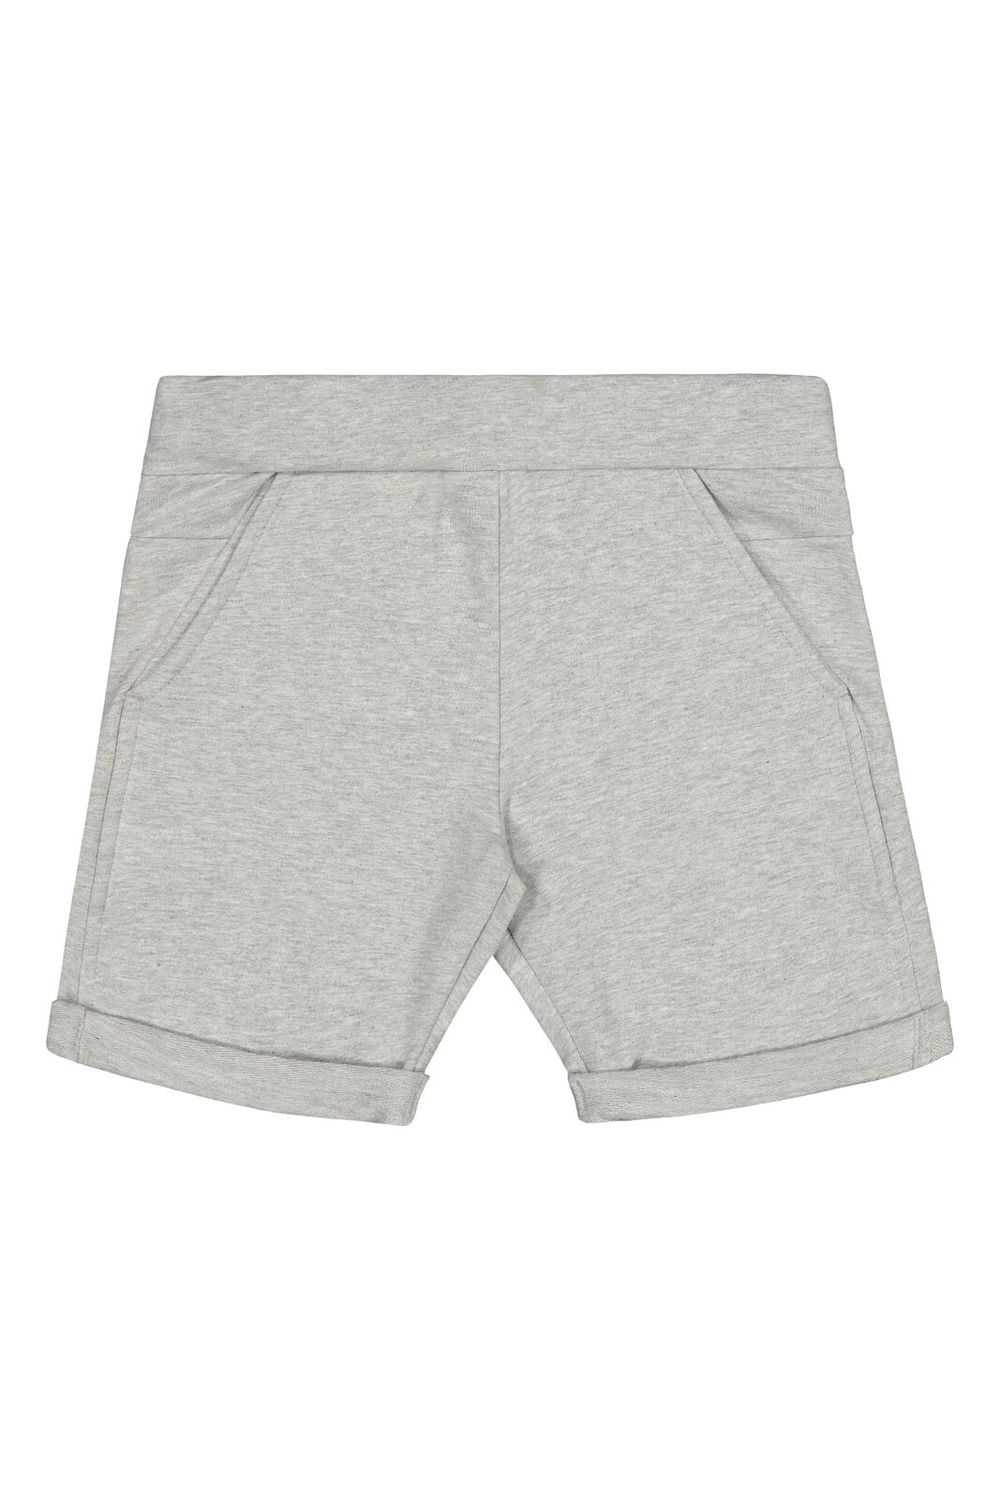 KAIKO JOGGER SHORTS, LIGHT GREY